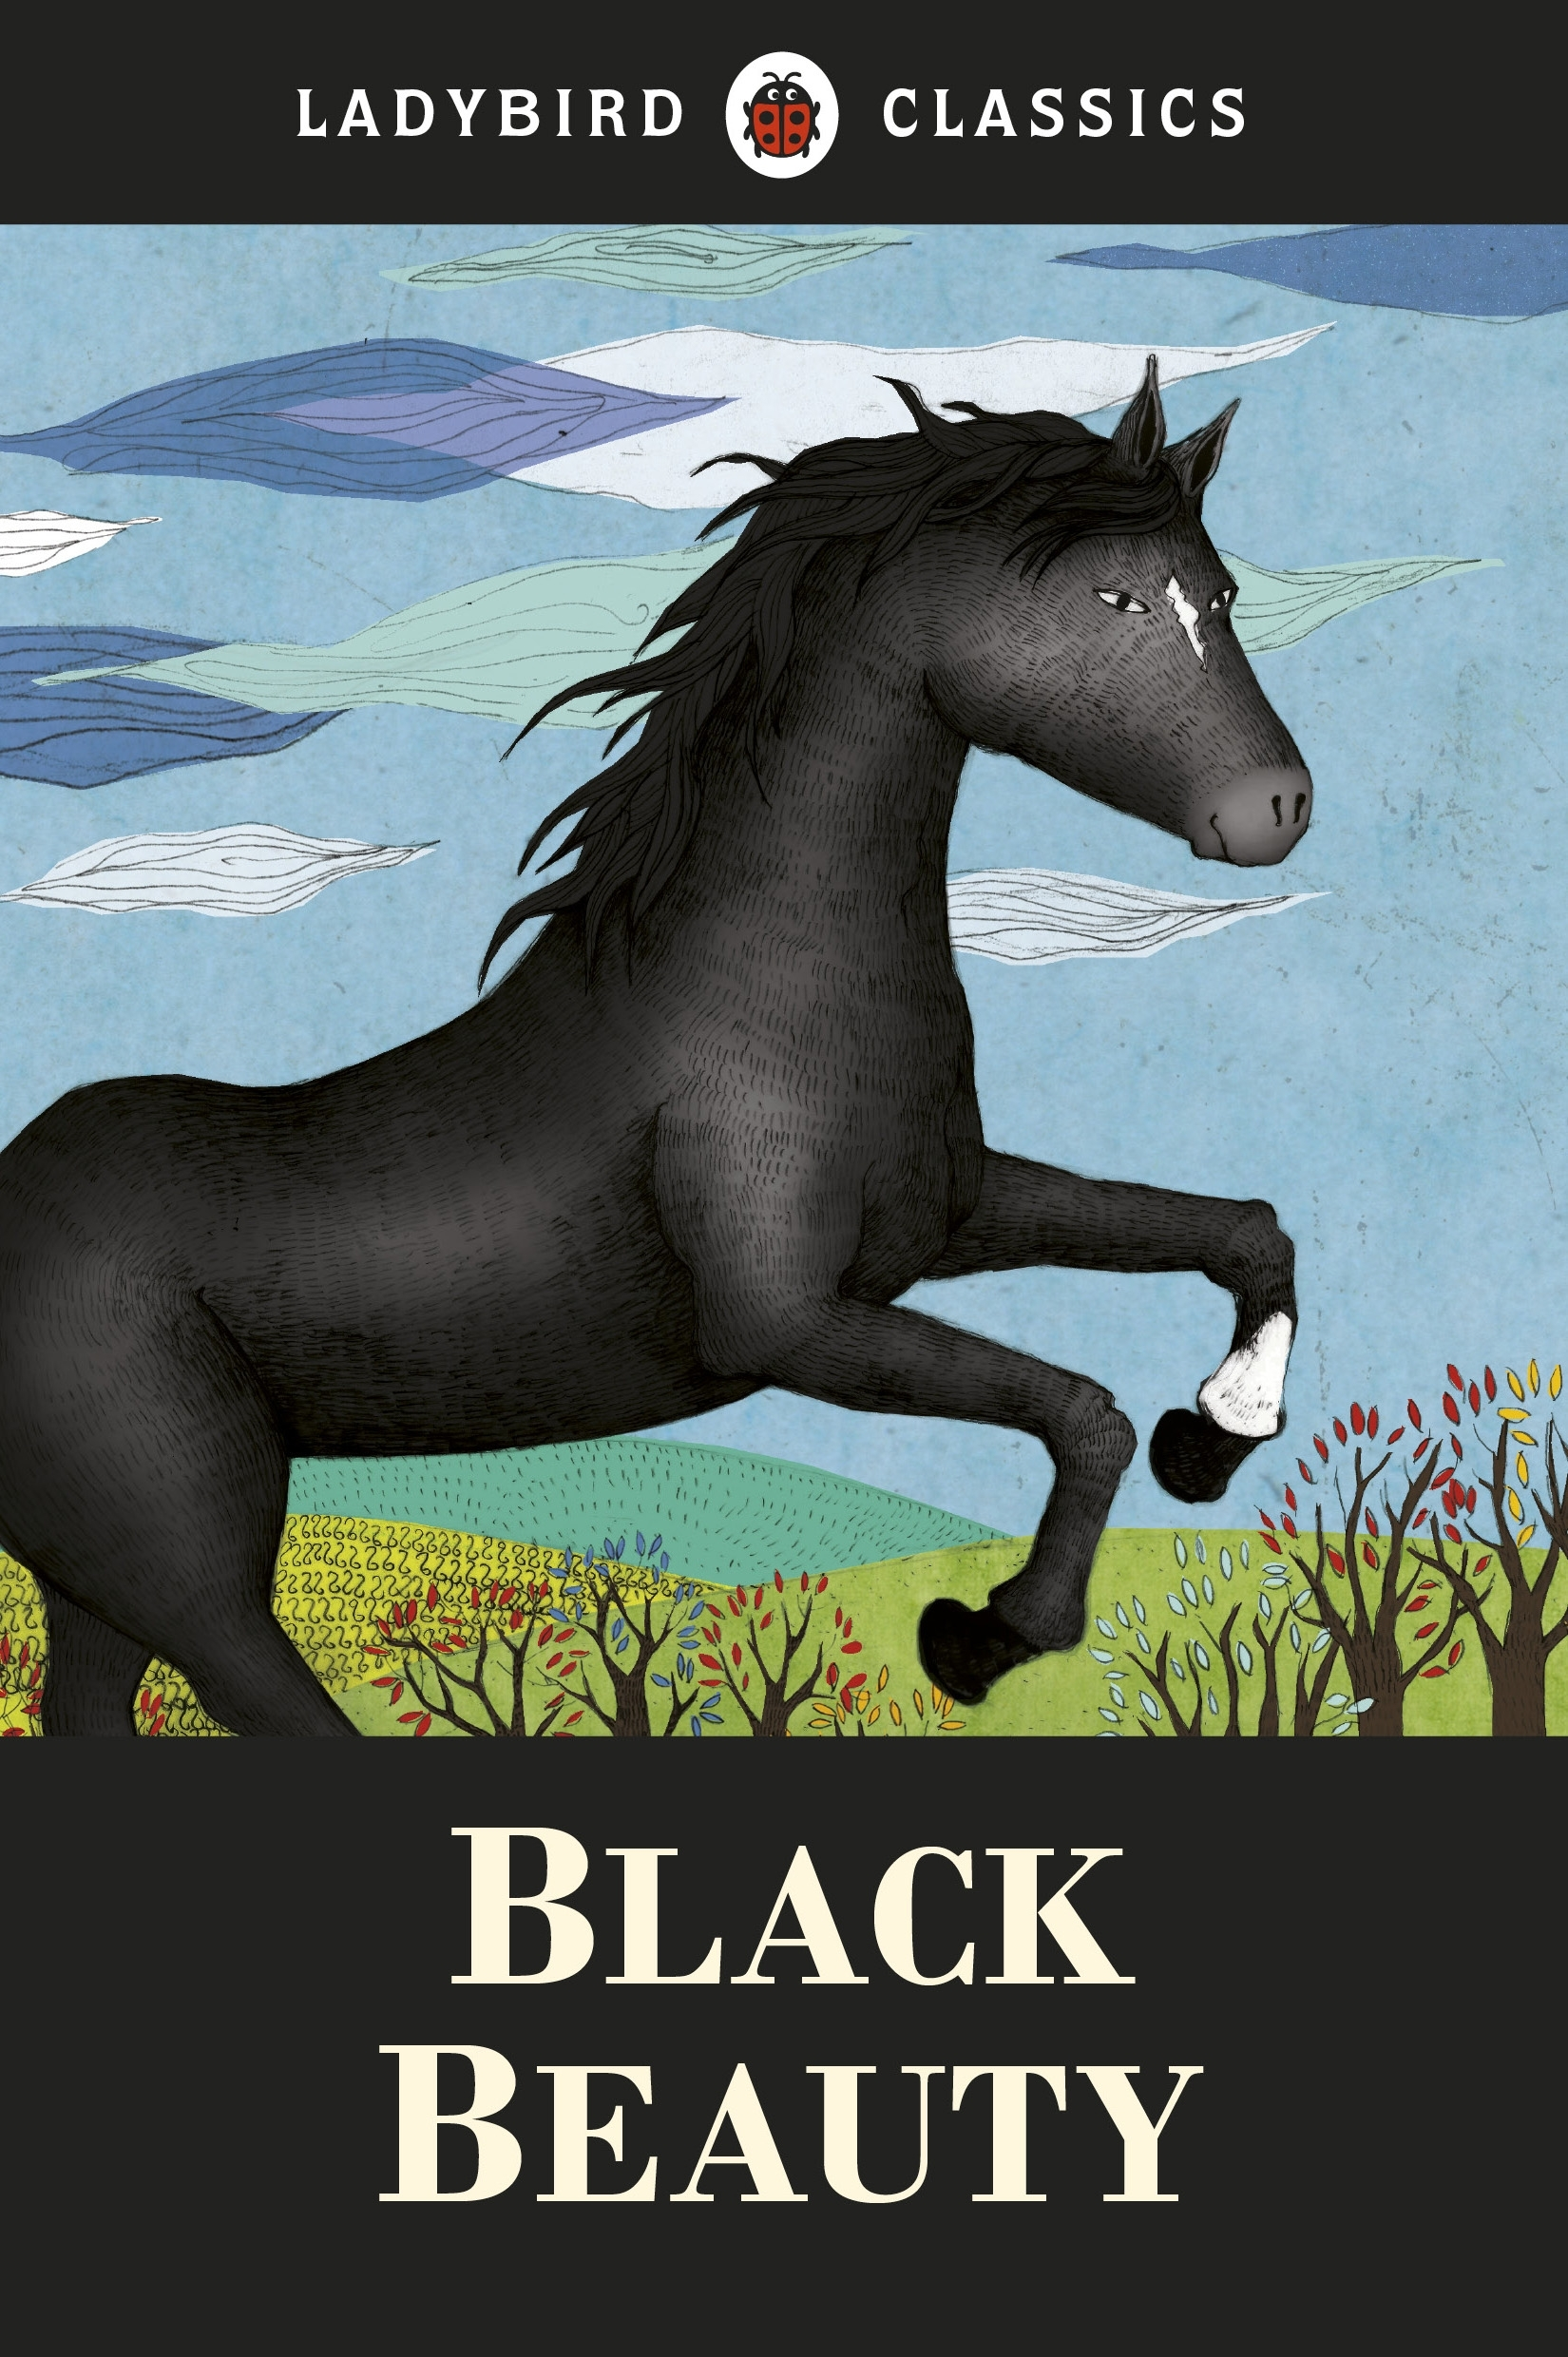 Book Cover Of Black Beauty : Ladybird classics black beauty penguin books new zealand